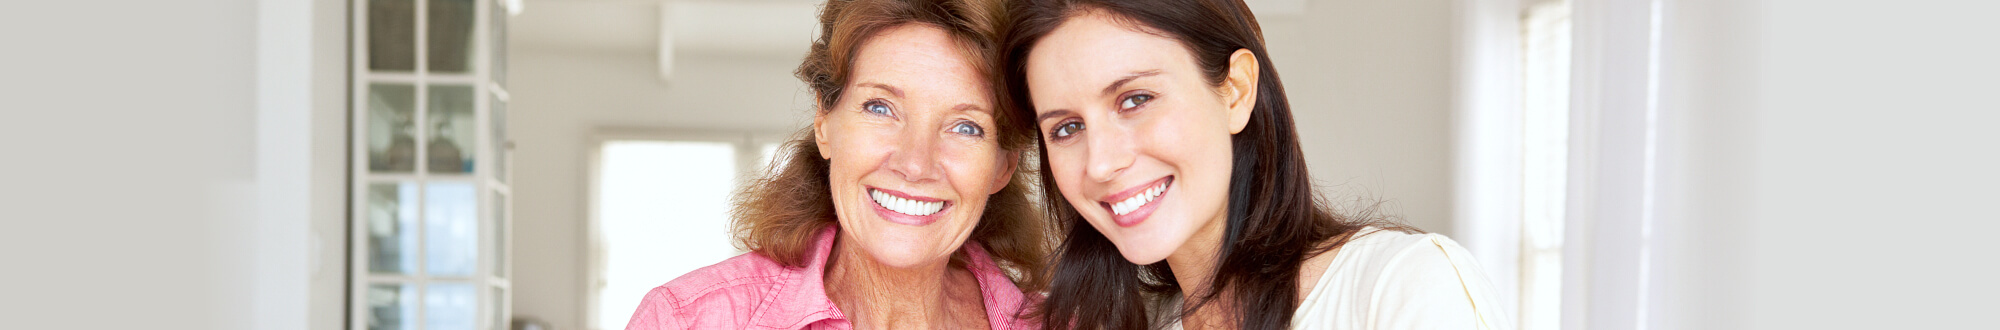 woman smiling with an elder woman